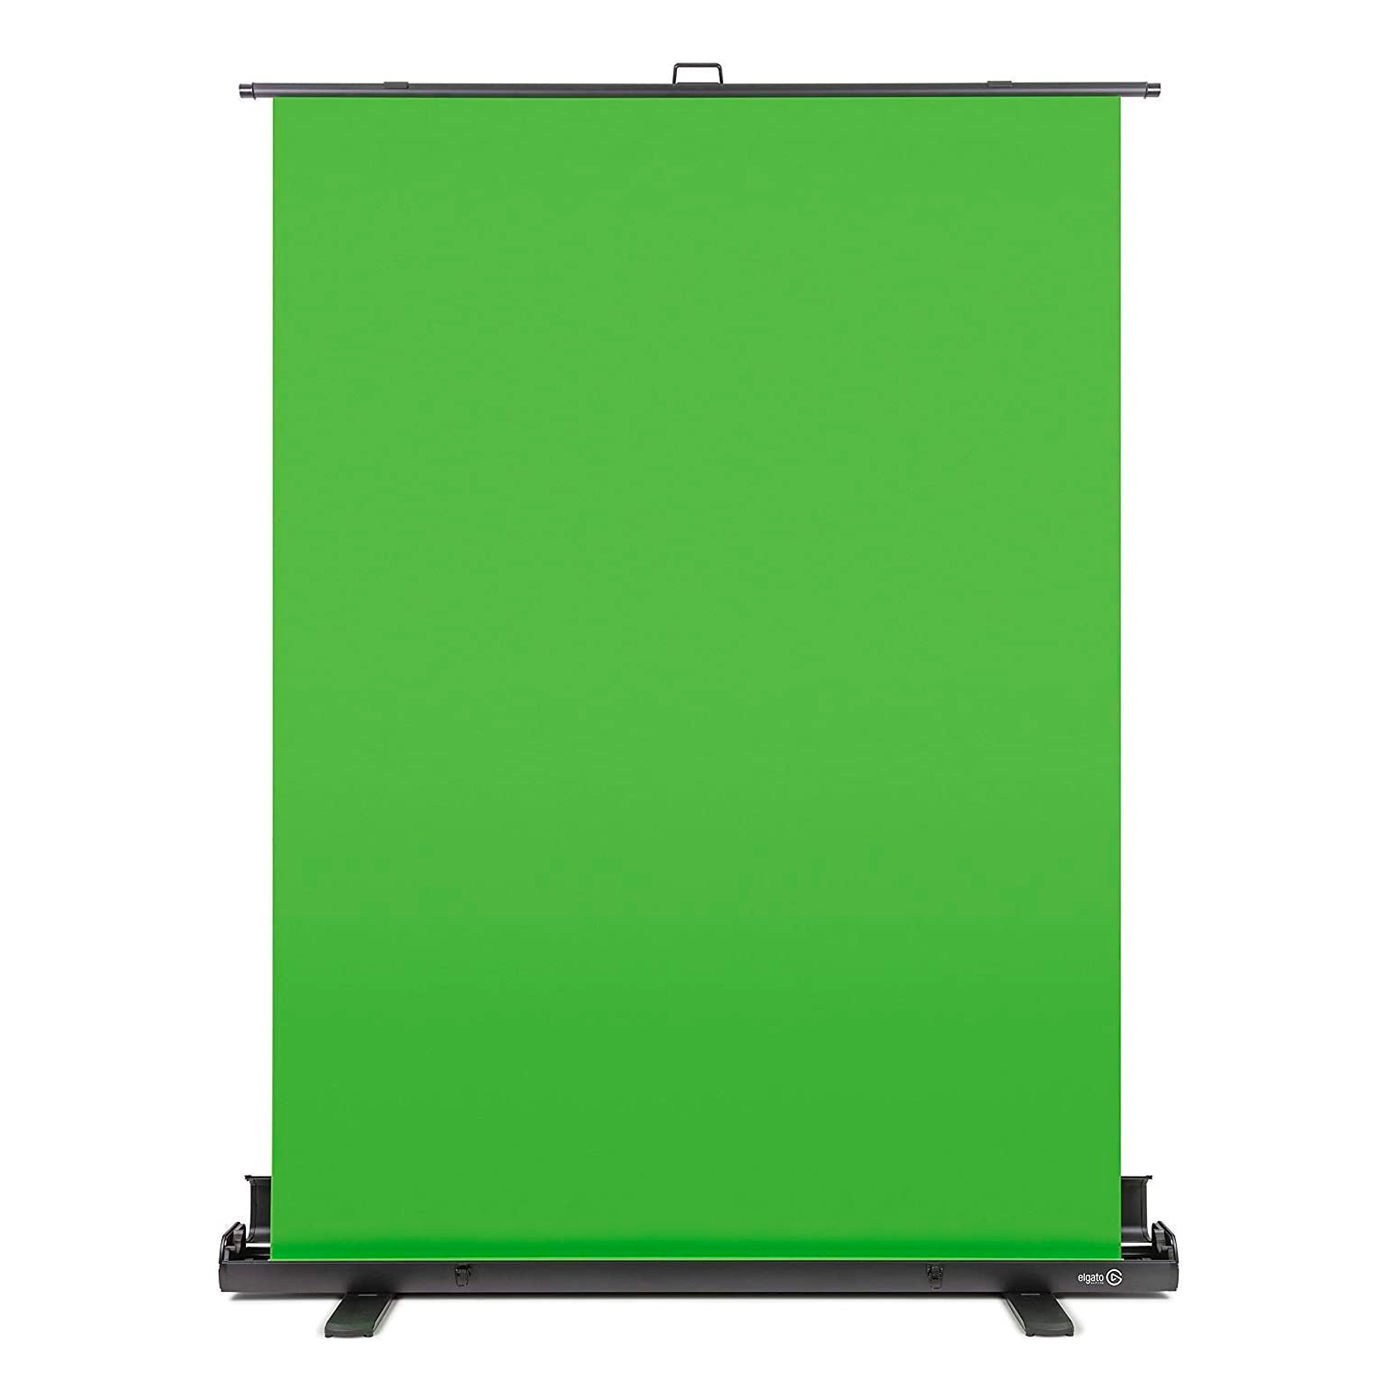 An image of an Elgato collapsible green screen on a white background